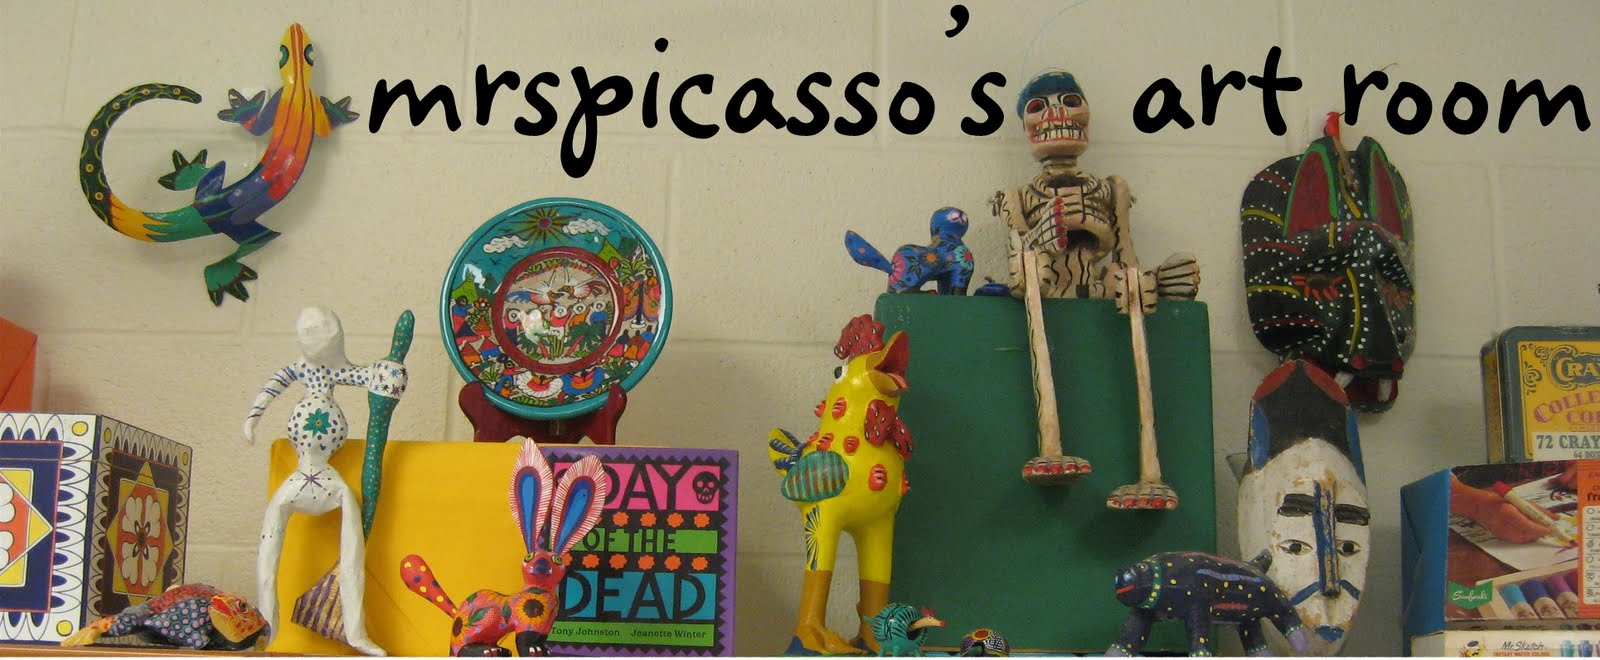 mrspicasso&#39;s art room